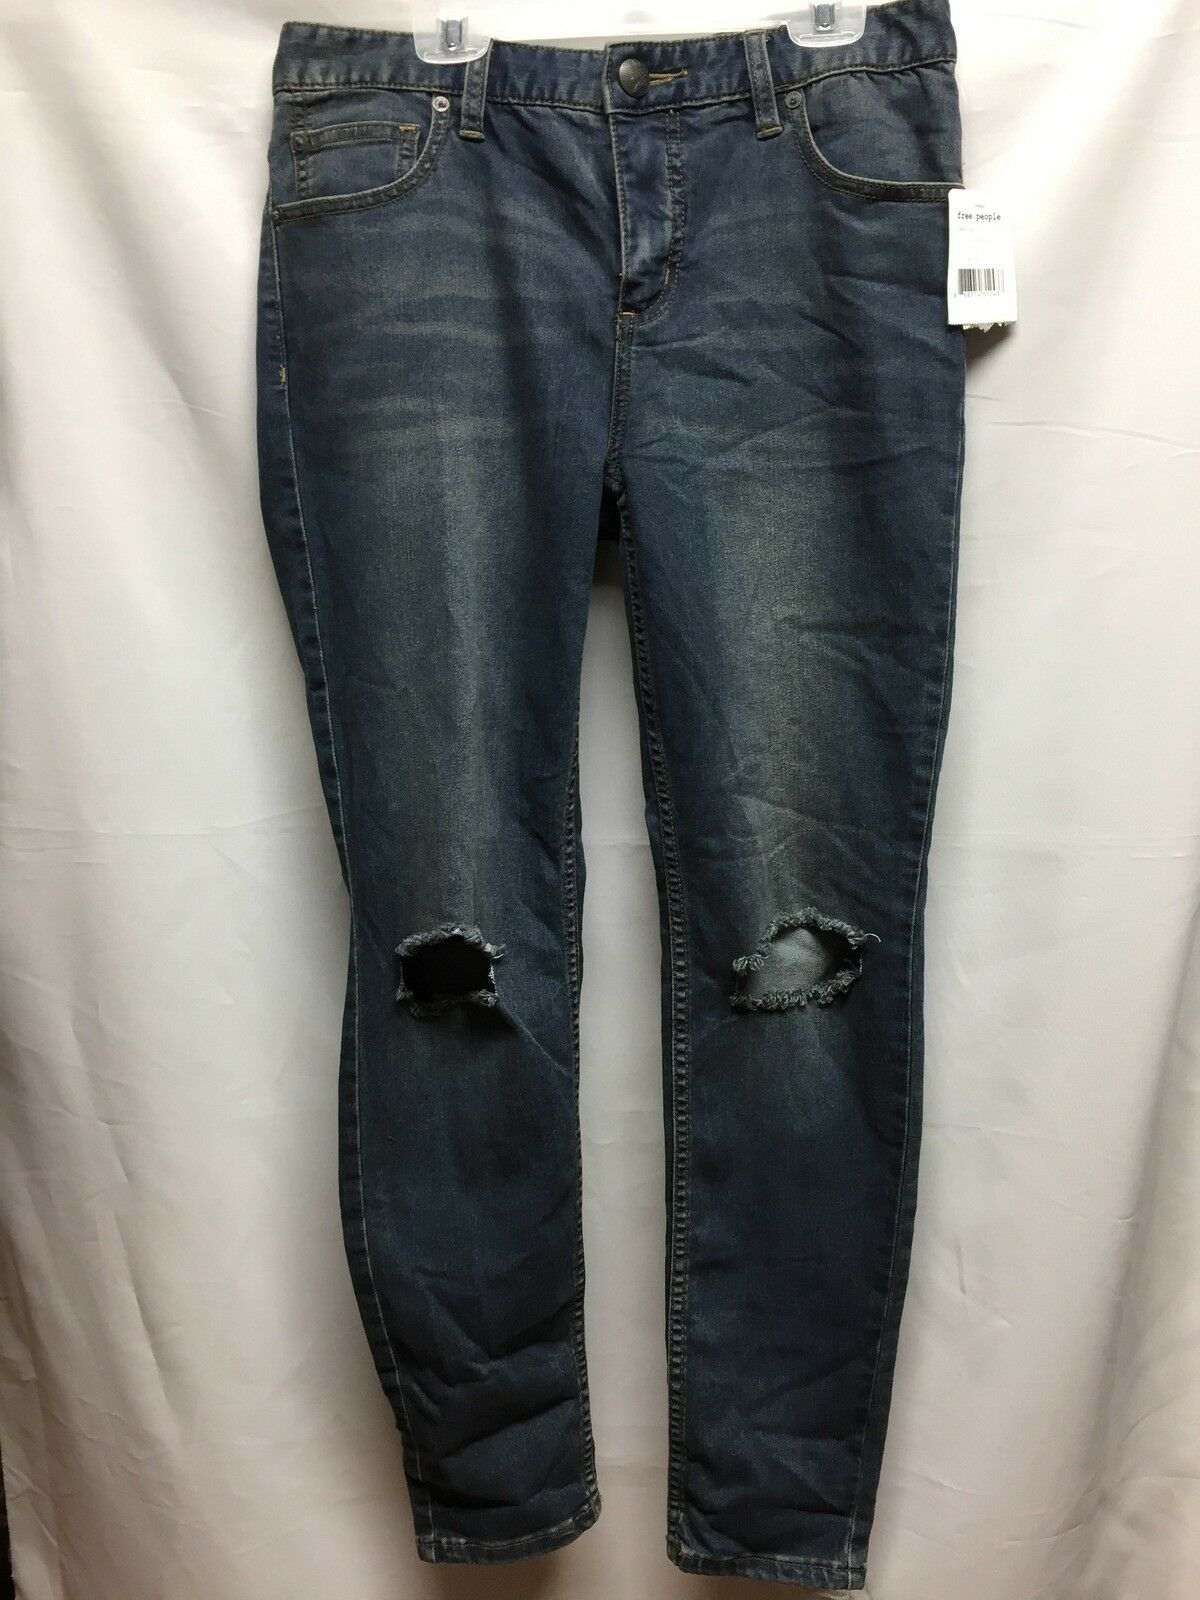 Free People Destroyed Skinny Jeans in Josie Wash OB435426 size 29